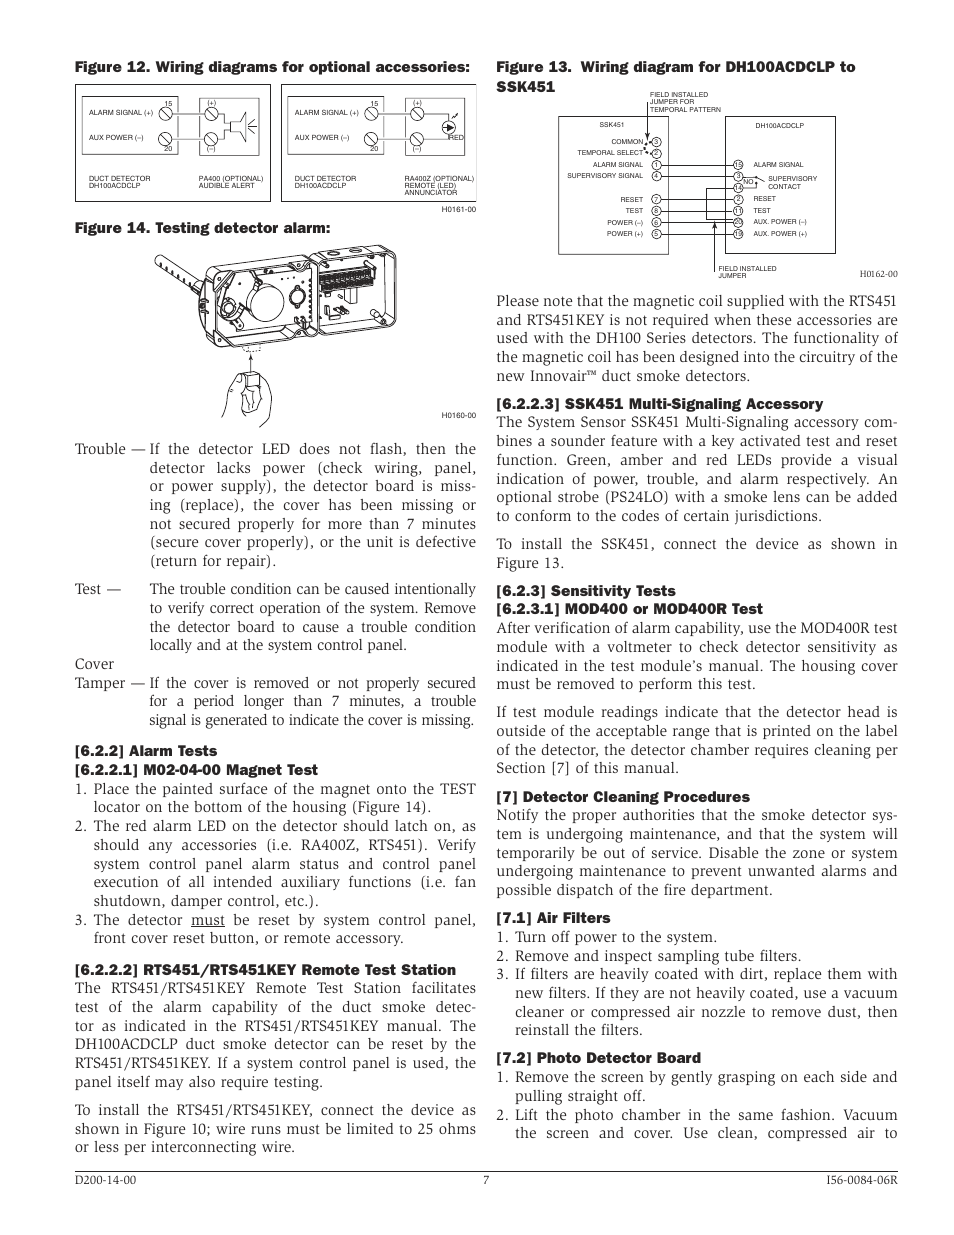 Figure 14. testing detector alarm | System Sensor ... on duct detector power, duct hvac circuit, 4 wire smoke detector diagram, ductwork diagram, integra type r transmission diagram, bobcat zero diagram, smoke detector system diagram, toro zero turn parts diagram, duct detector alarm, duct detectors housings, duct damper diagram, fuse box diagram, duct detector installation requirements, centrifugal switch diagram, duct detector accessories, commercial hvac system diagram, smoke detector placement diagram,